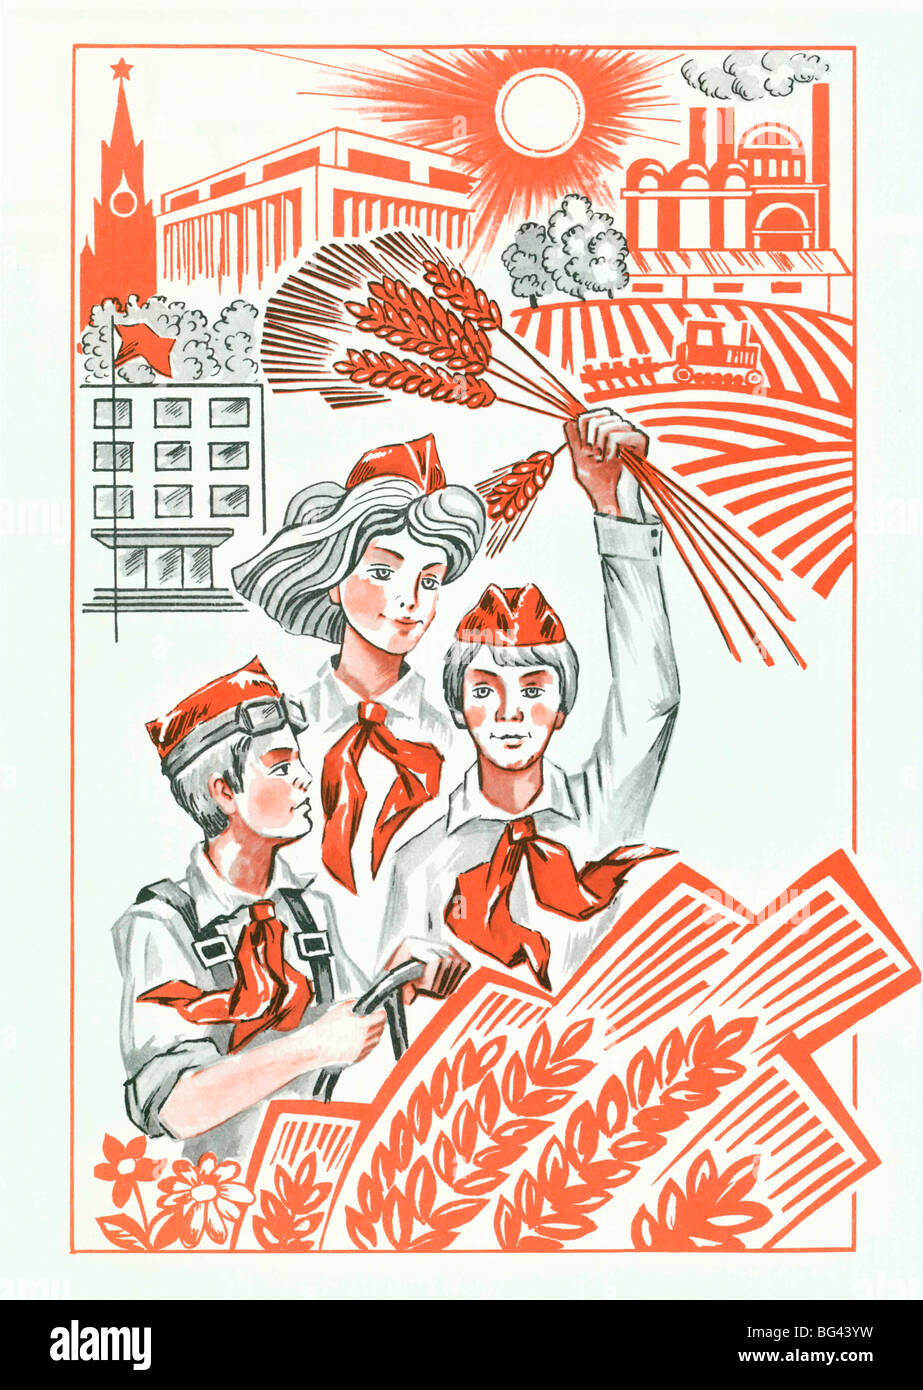 Illustration-slogan for the Pioneer Movement from the times of the Soviet Union, Russia - Stock Image